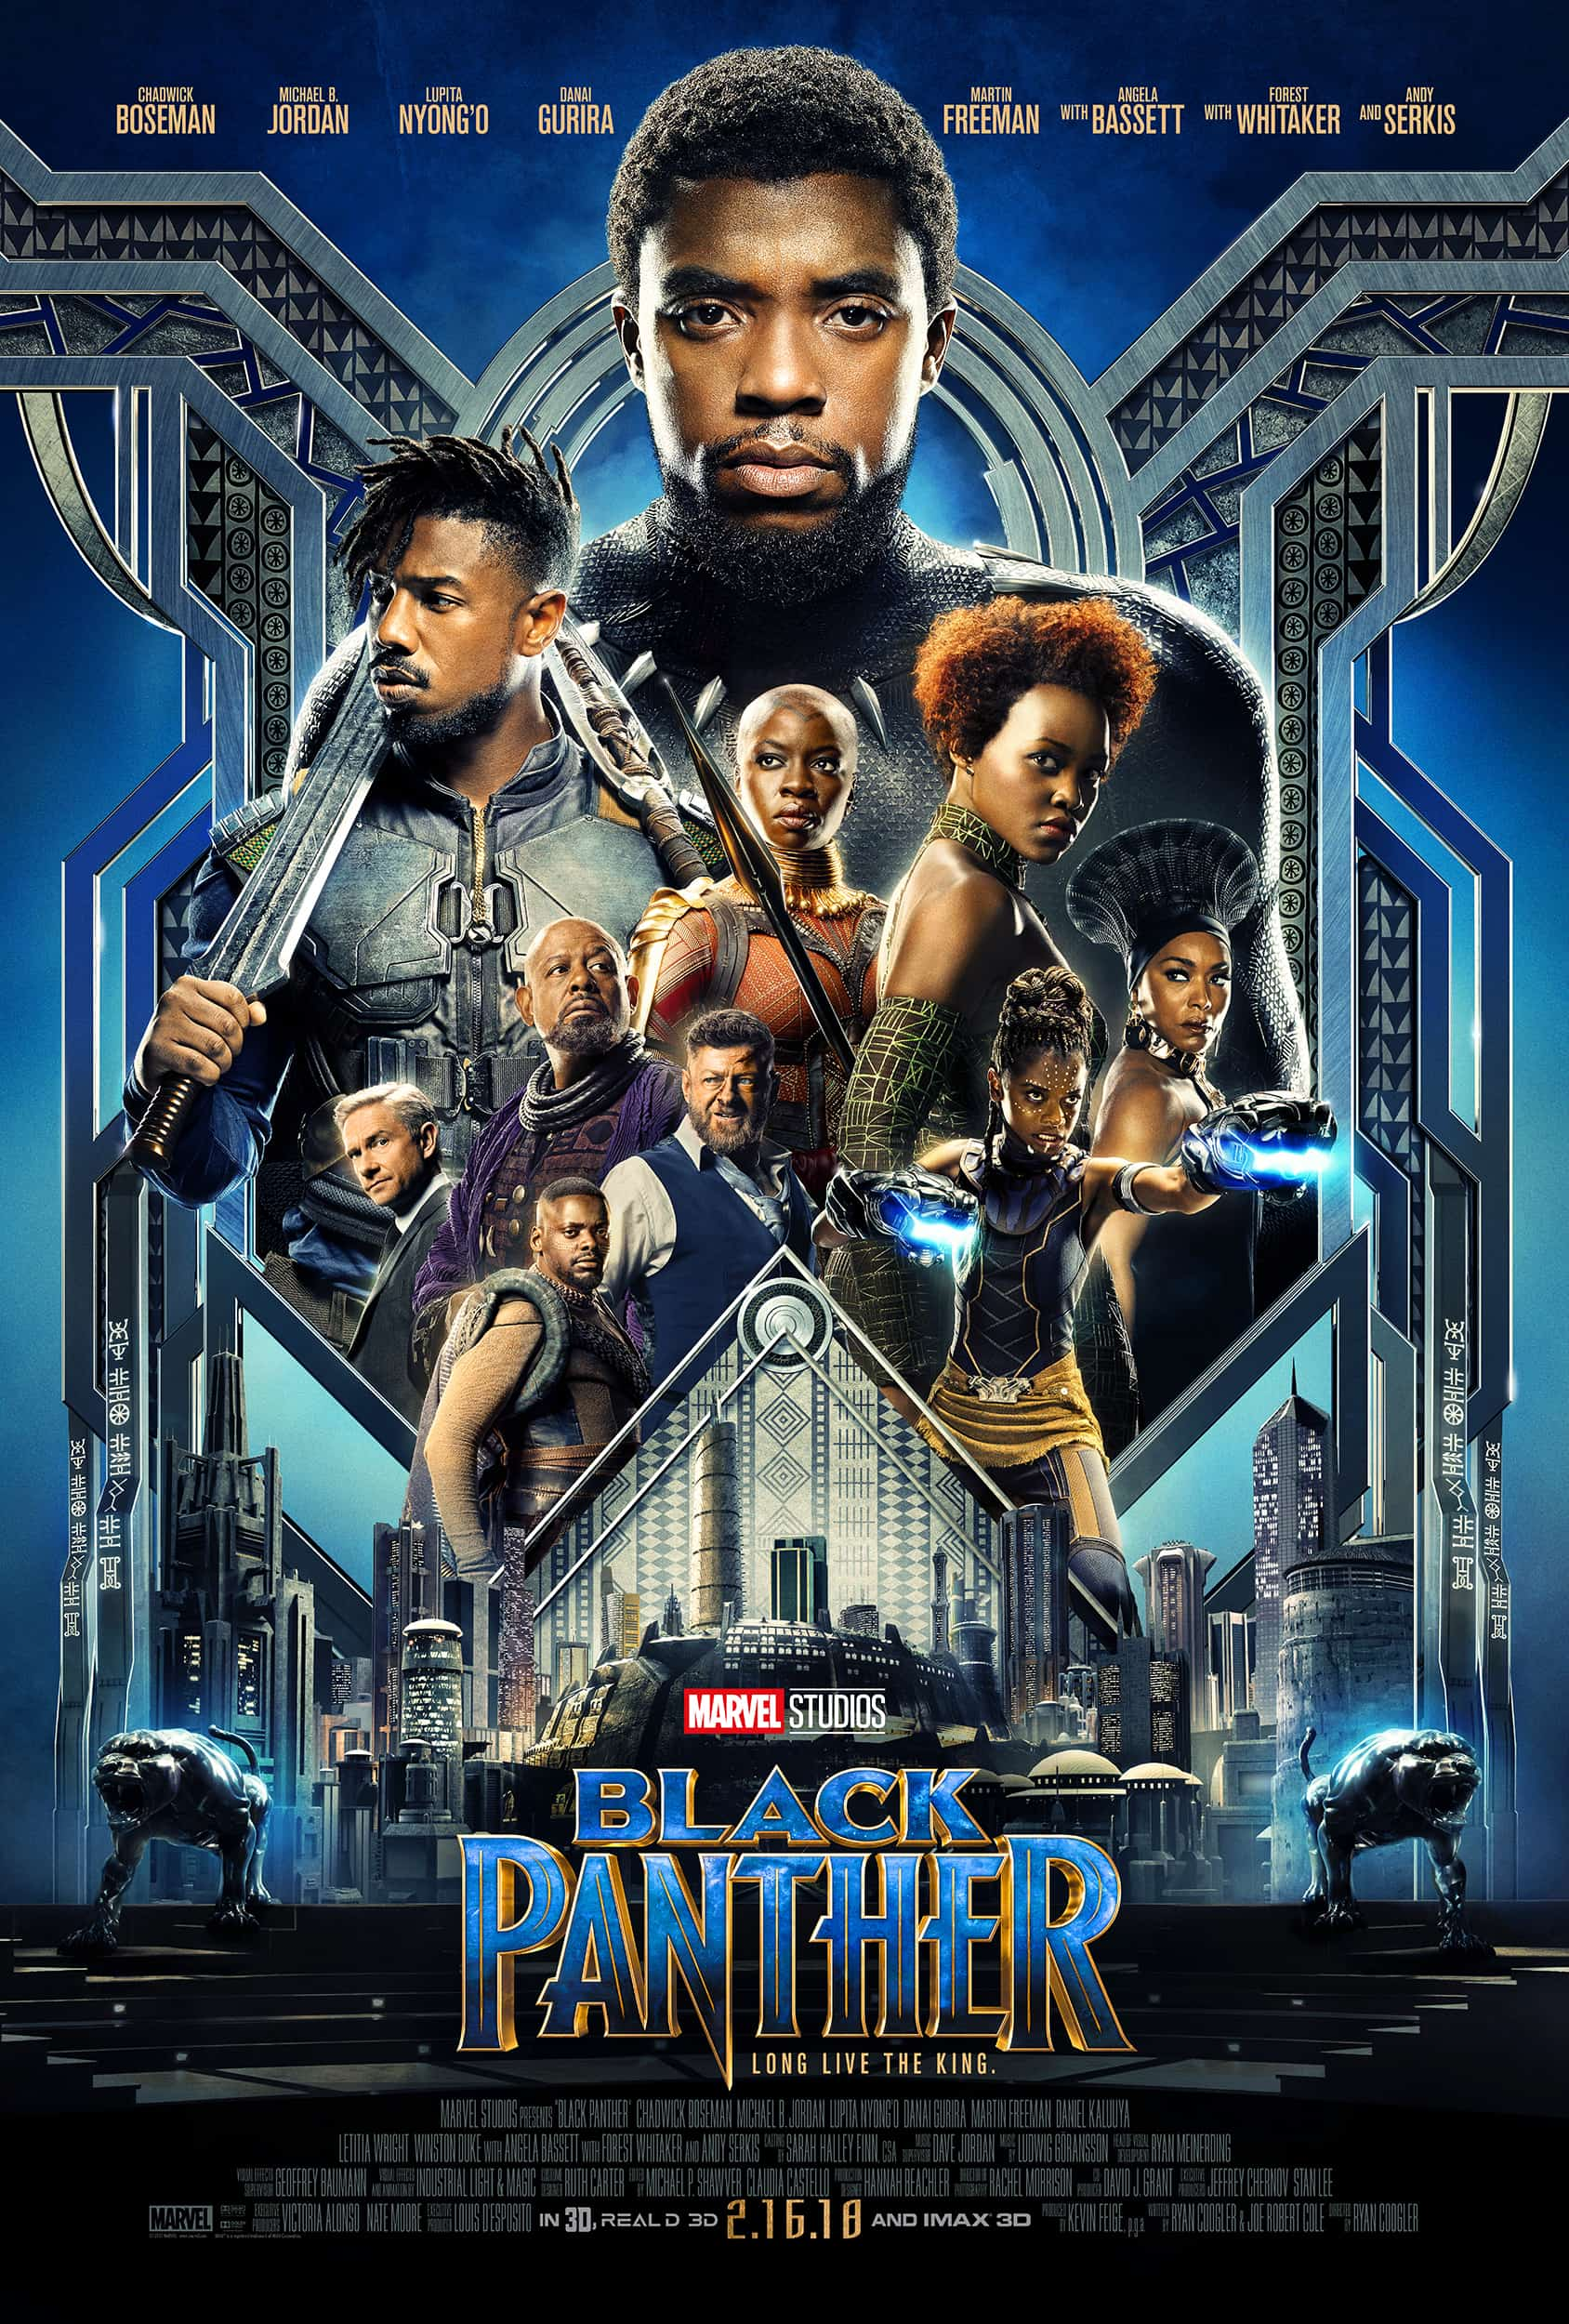 New Black Panther Trailer and Poster